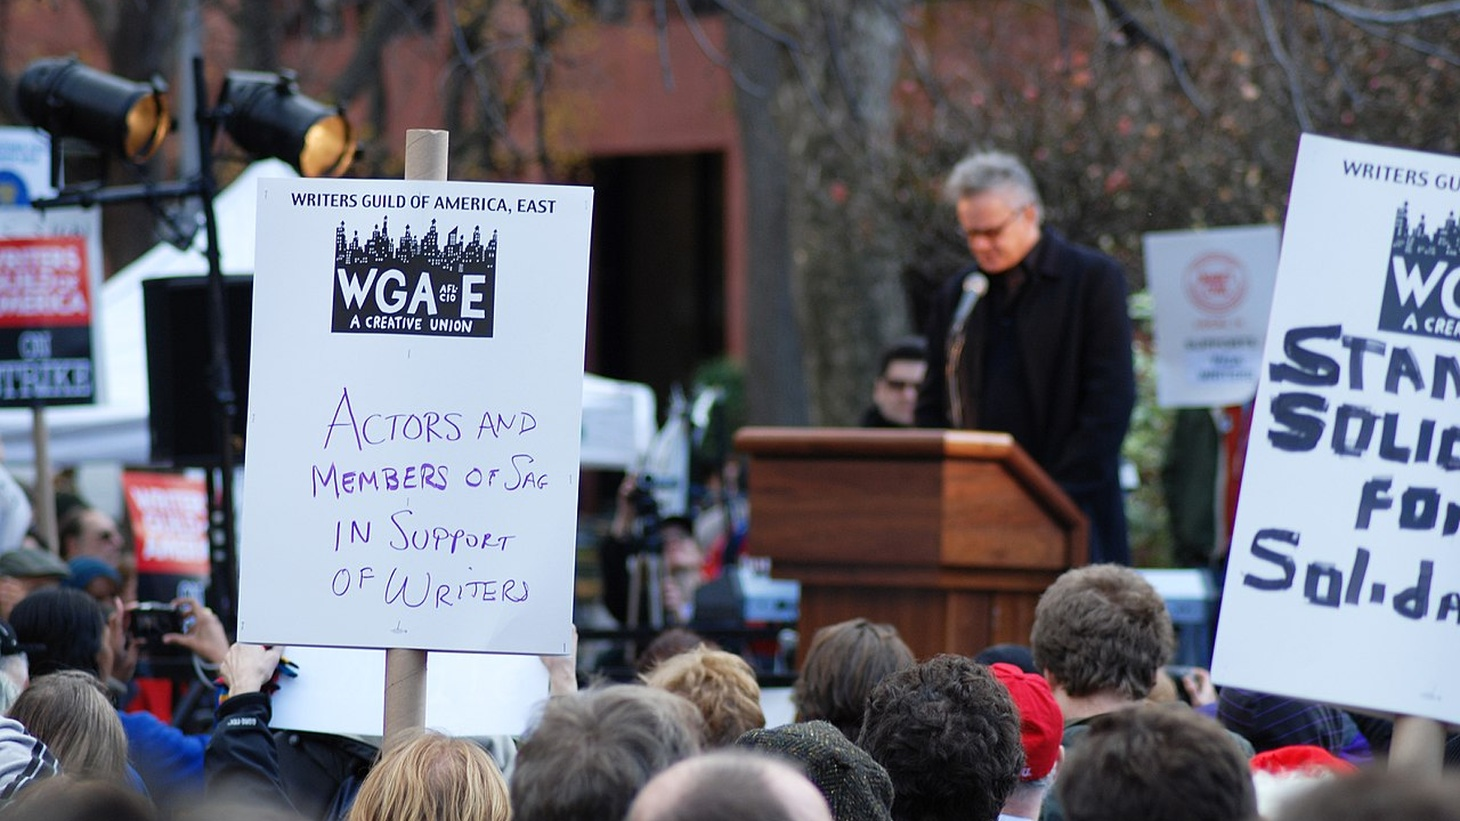 Writer's Guild of America East Soladarity Rally in Washington Square .